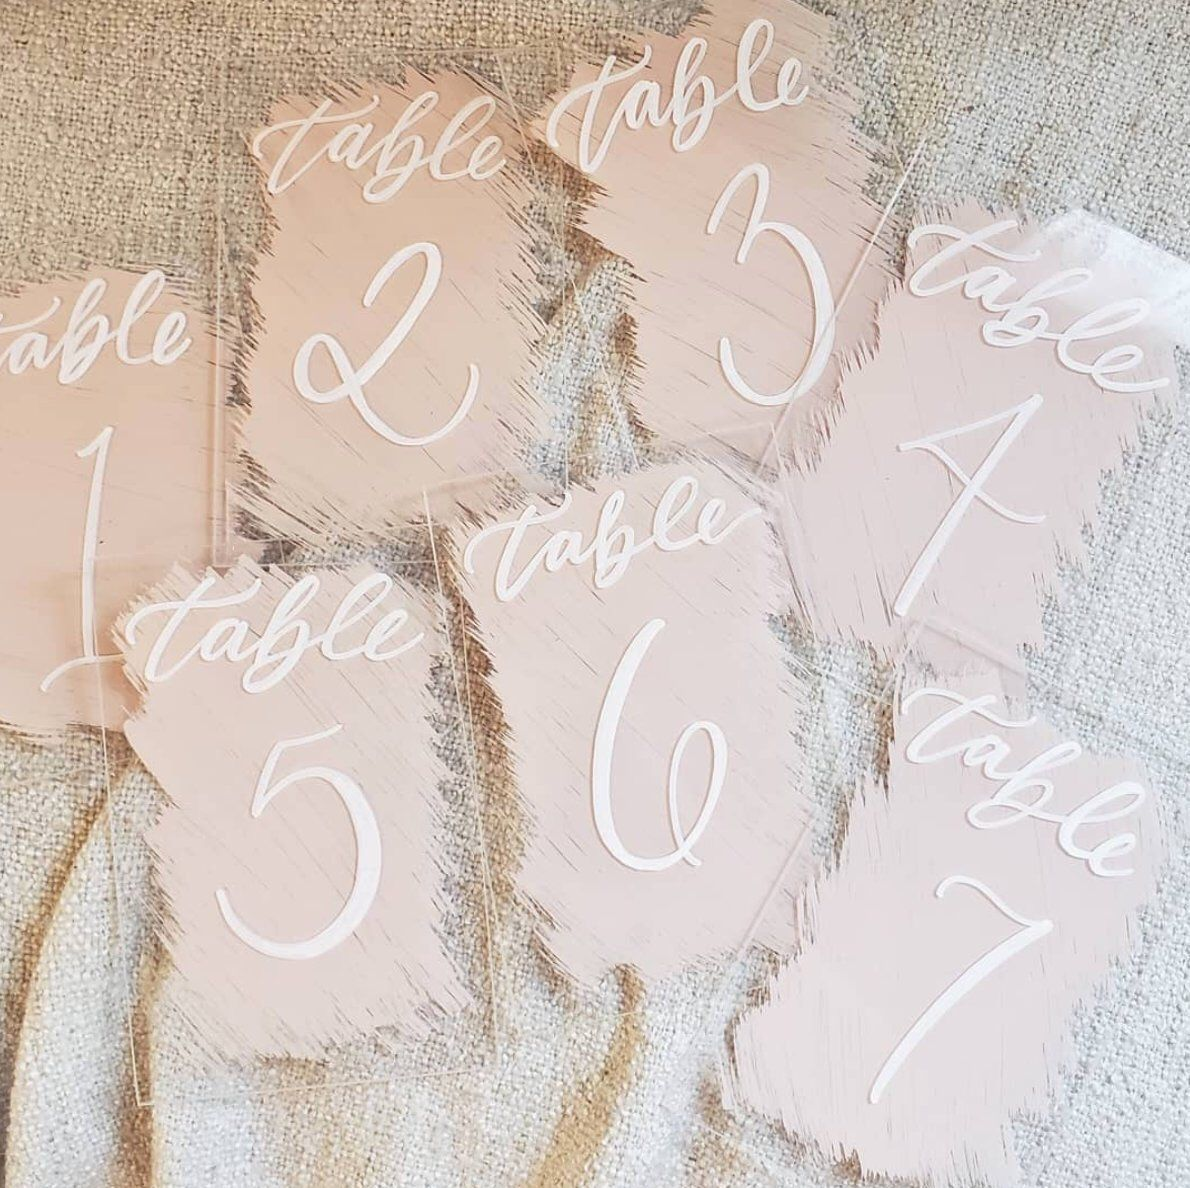 Acrylic Wedding Table Numbers with Painted Backs